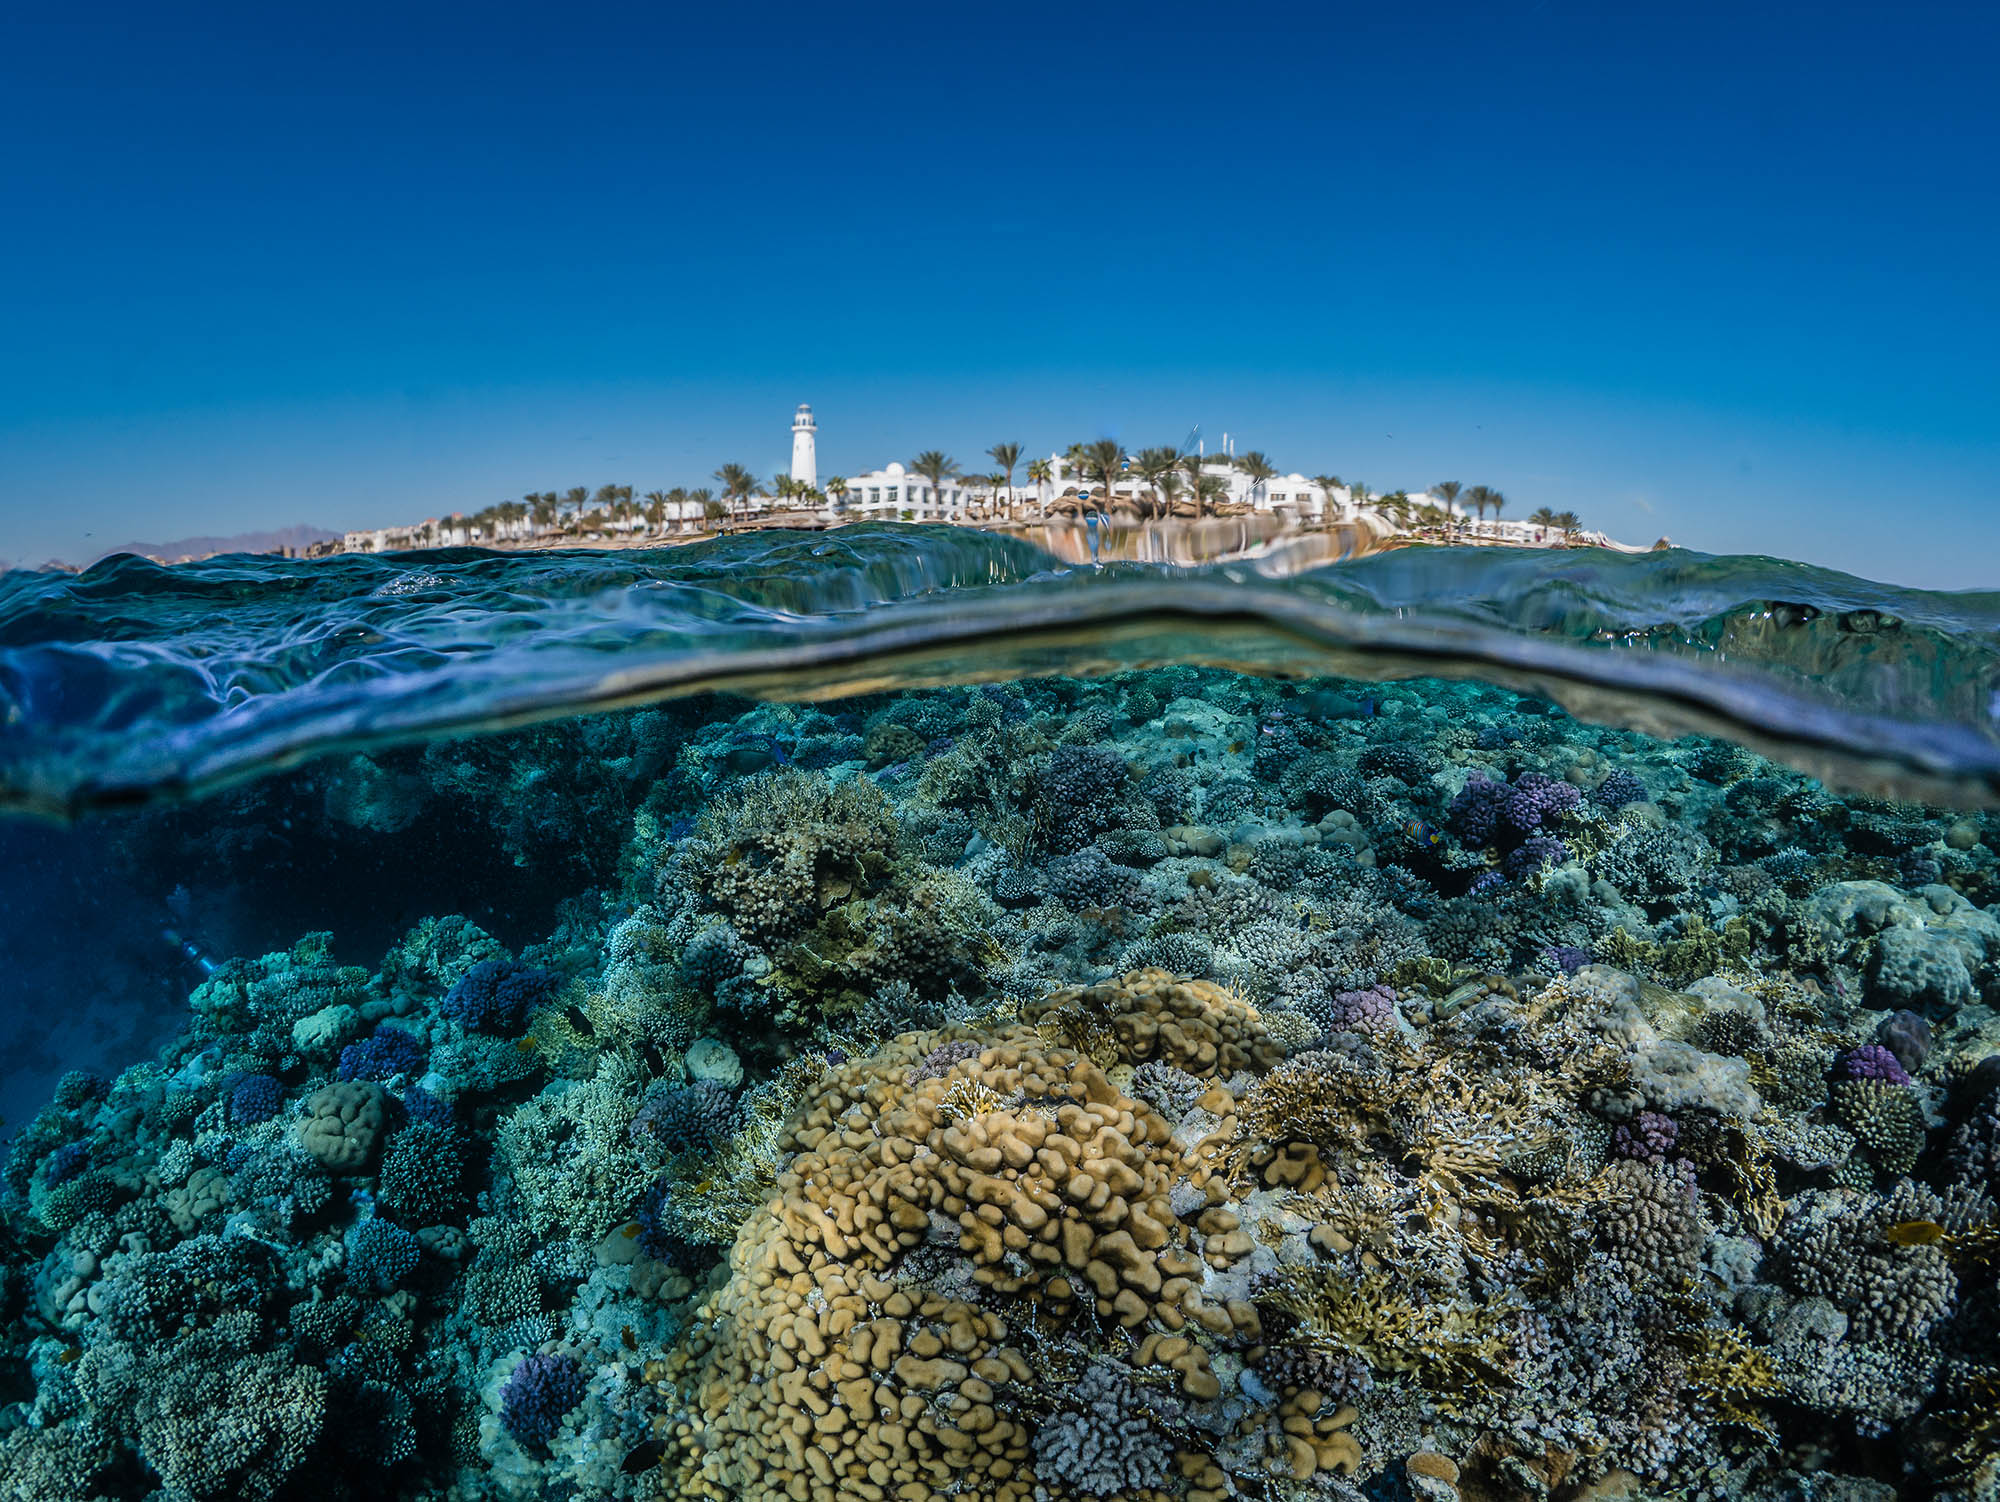 over under perspective with reef below and landscape above